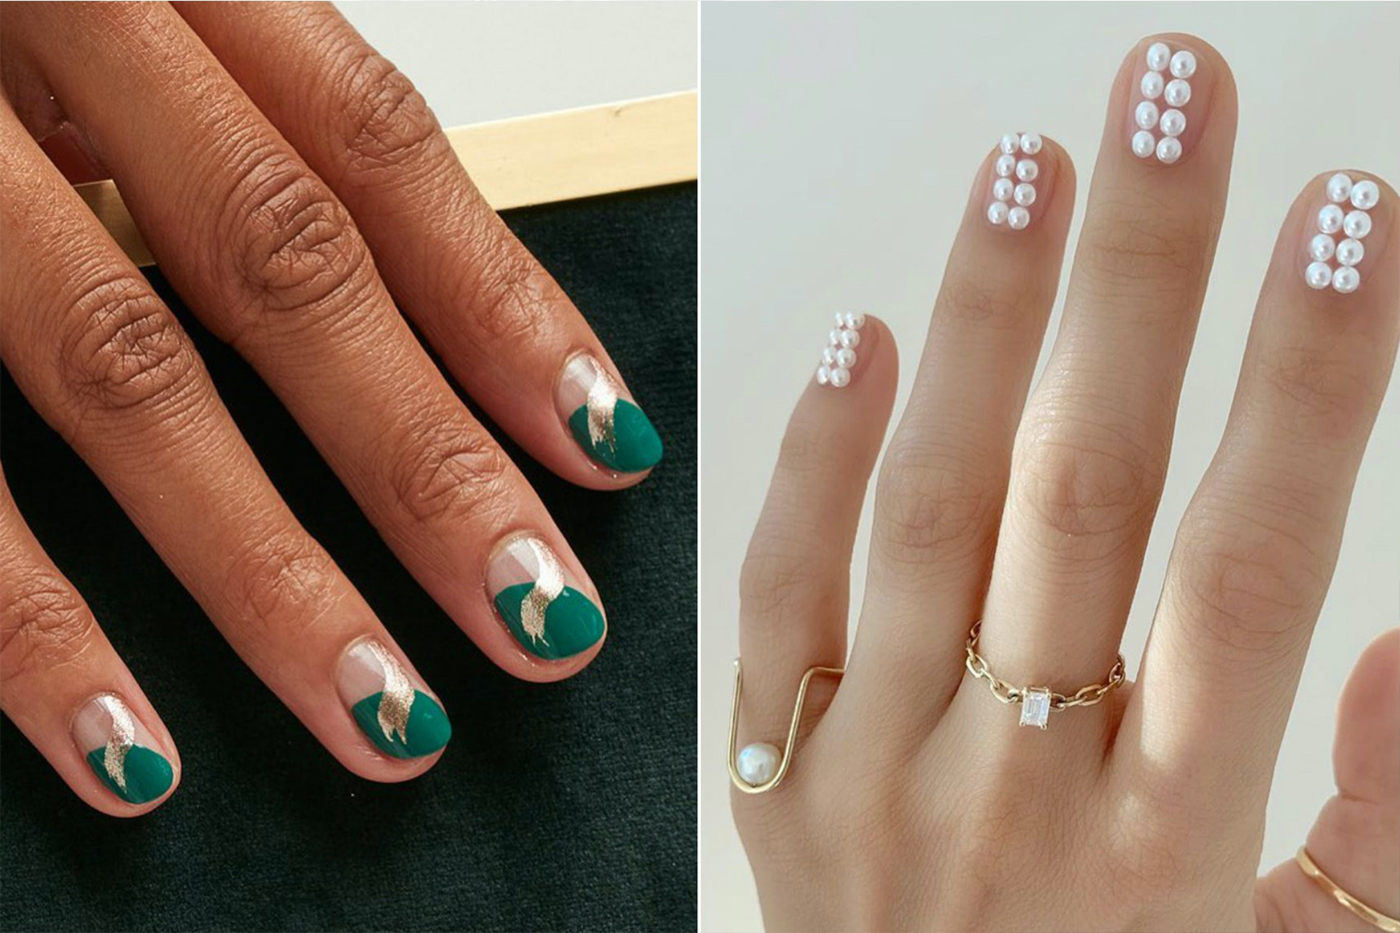 Hottest nail trends for the holiday season